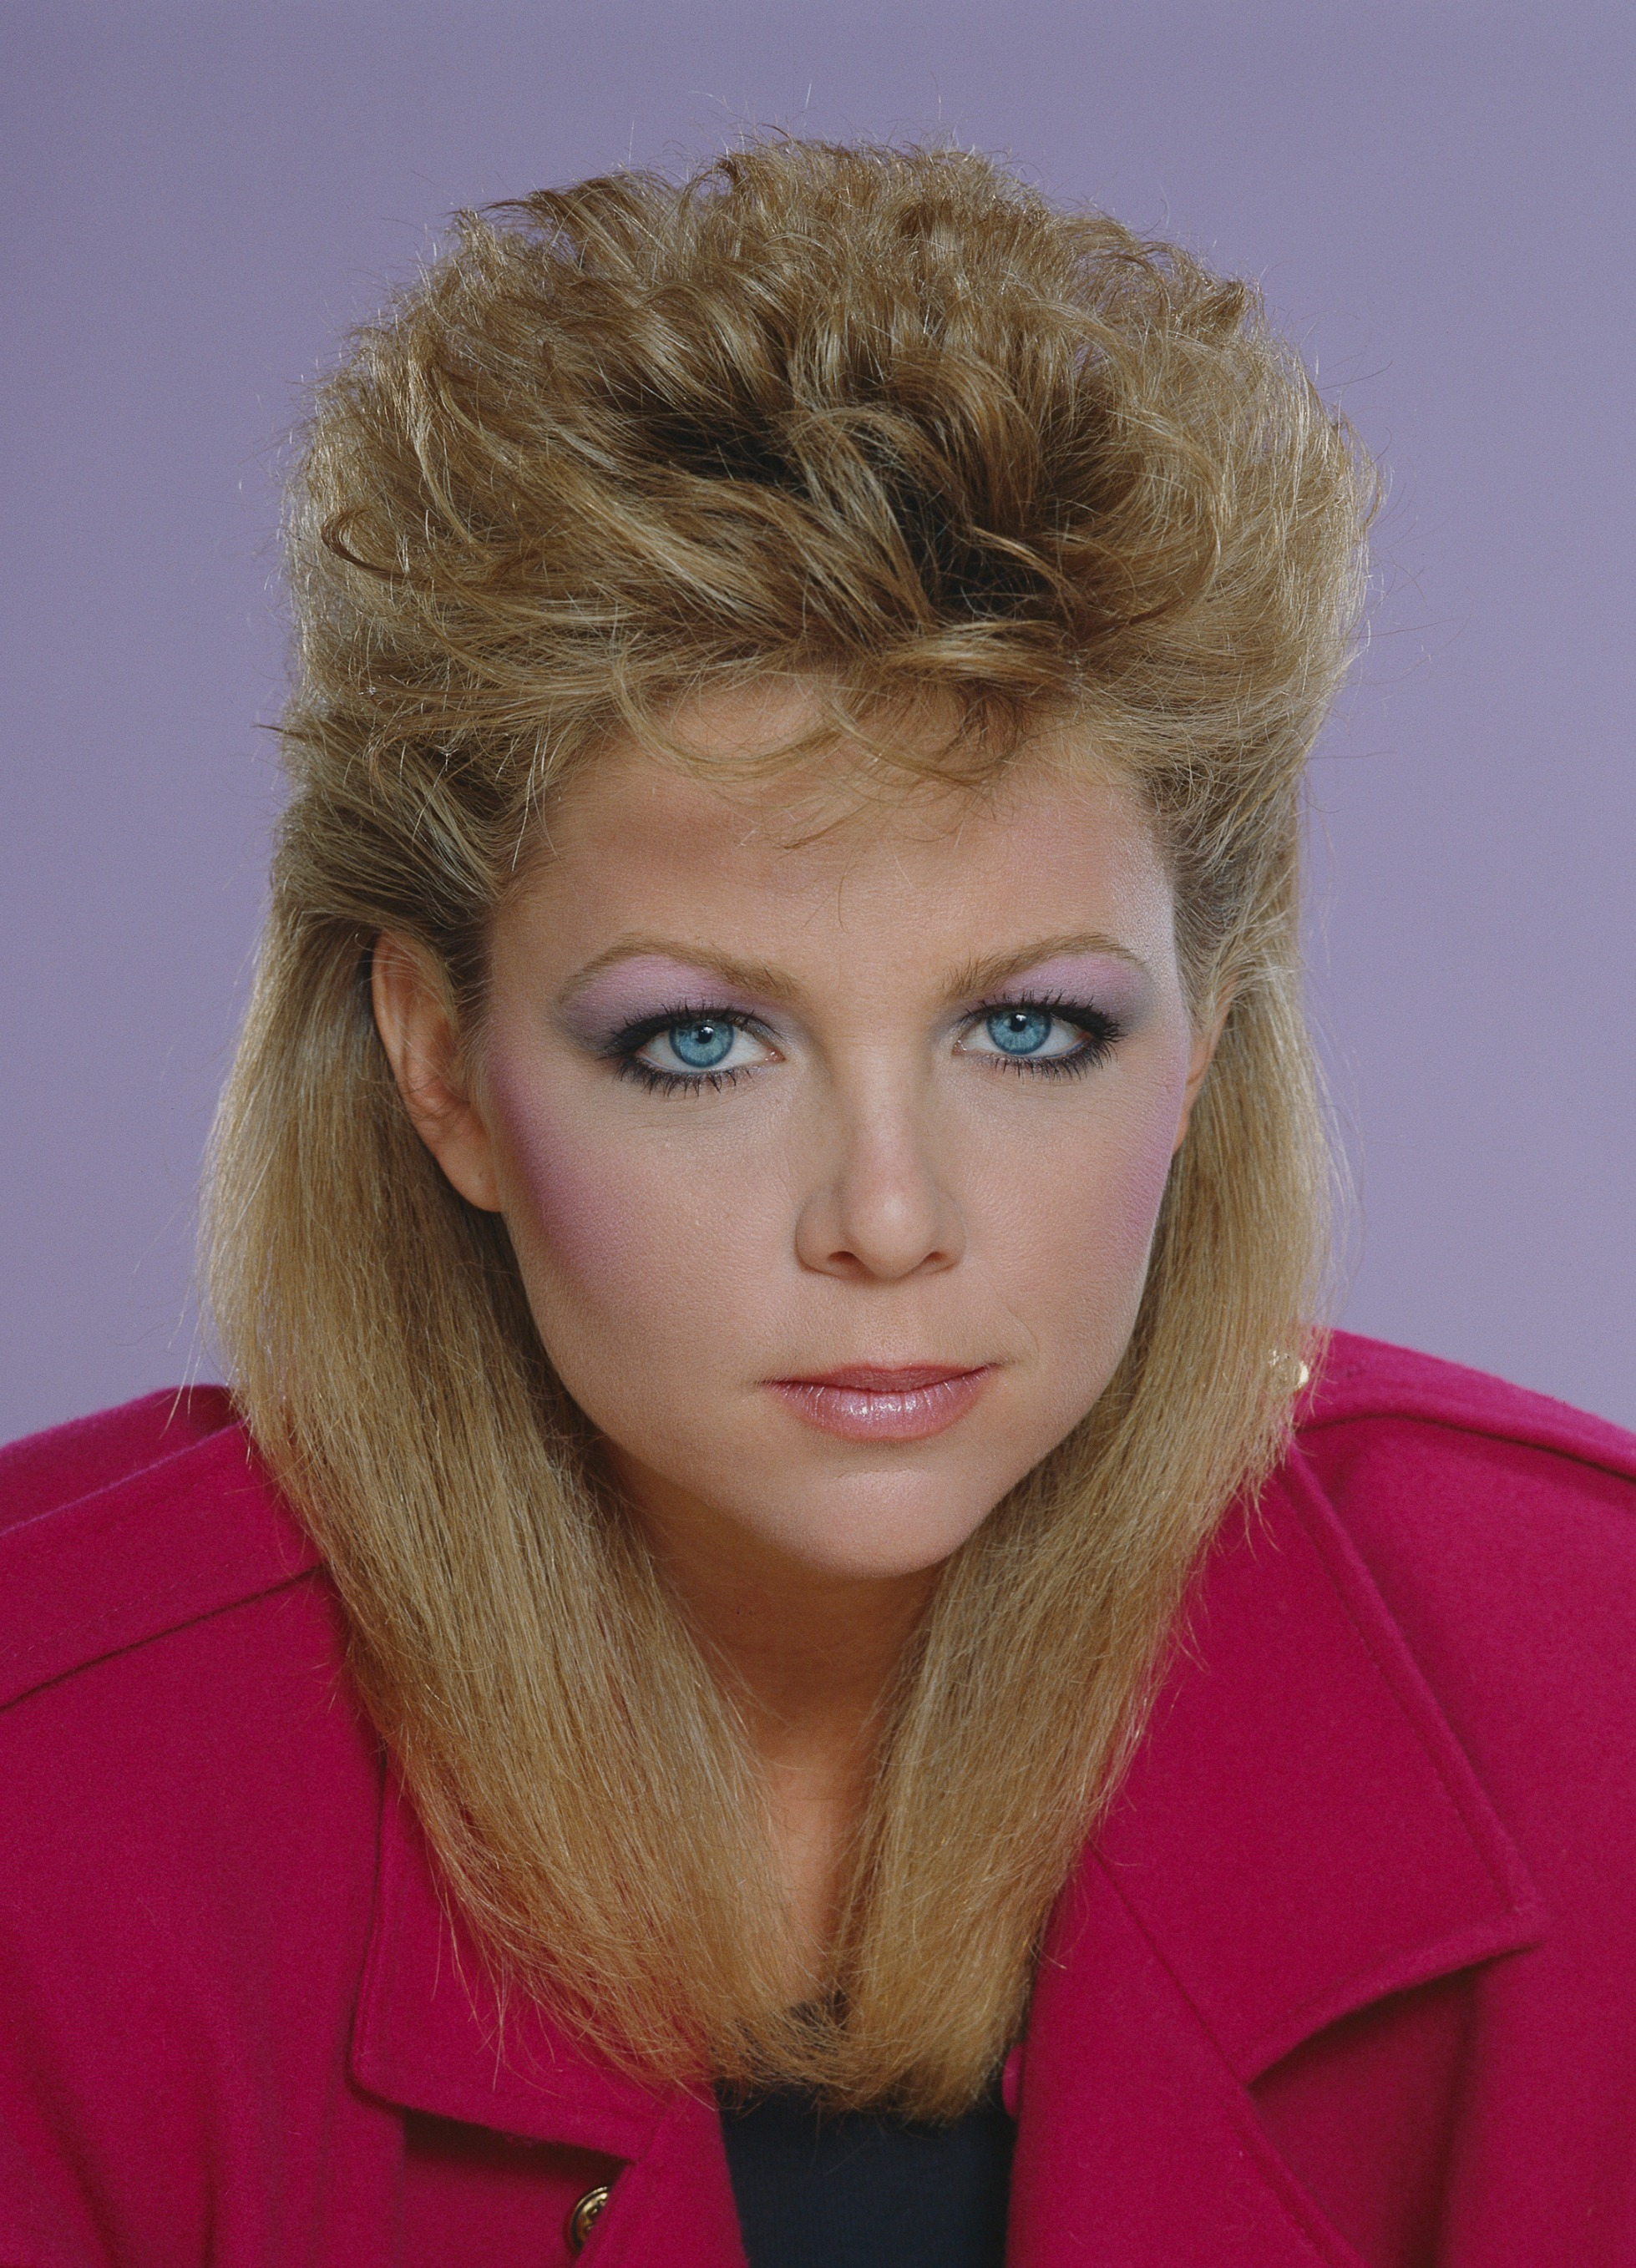 Stupendous Bad 3980S Beauty Trends Embarrassing Eighties Hairstyles And Hairstyles For Women Draintrainus